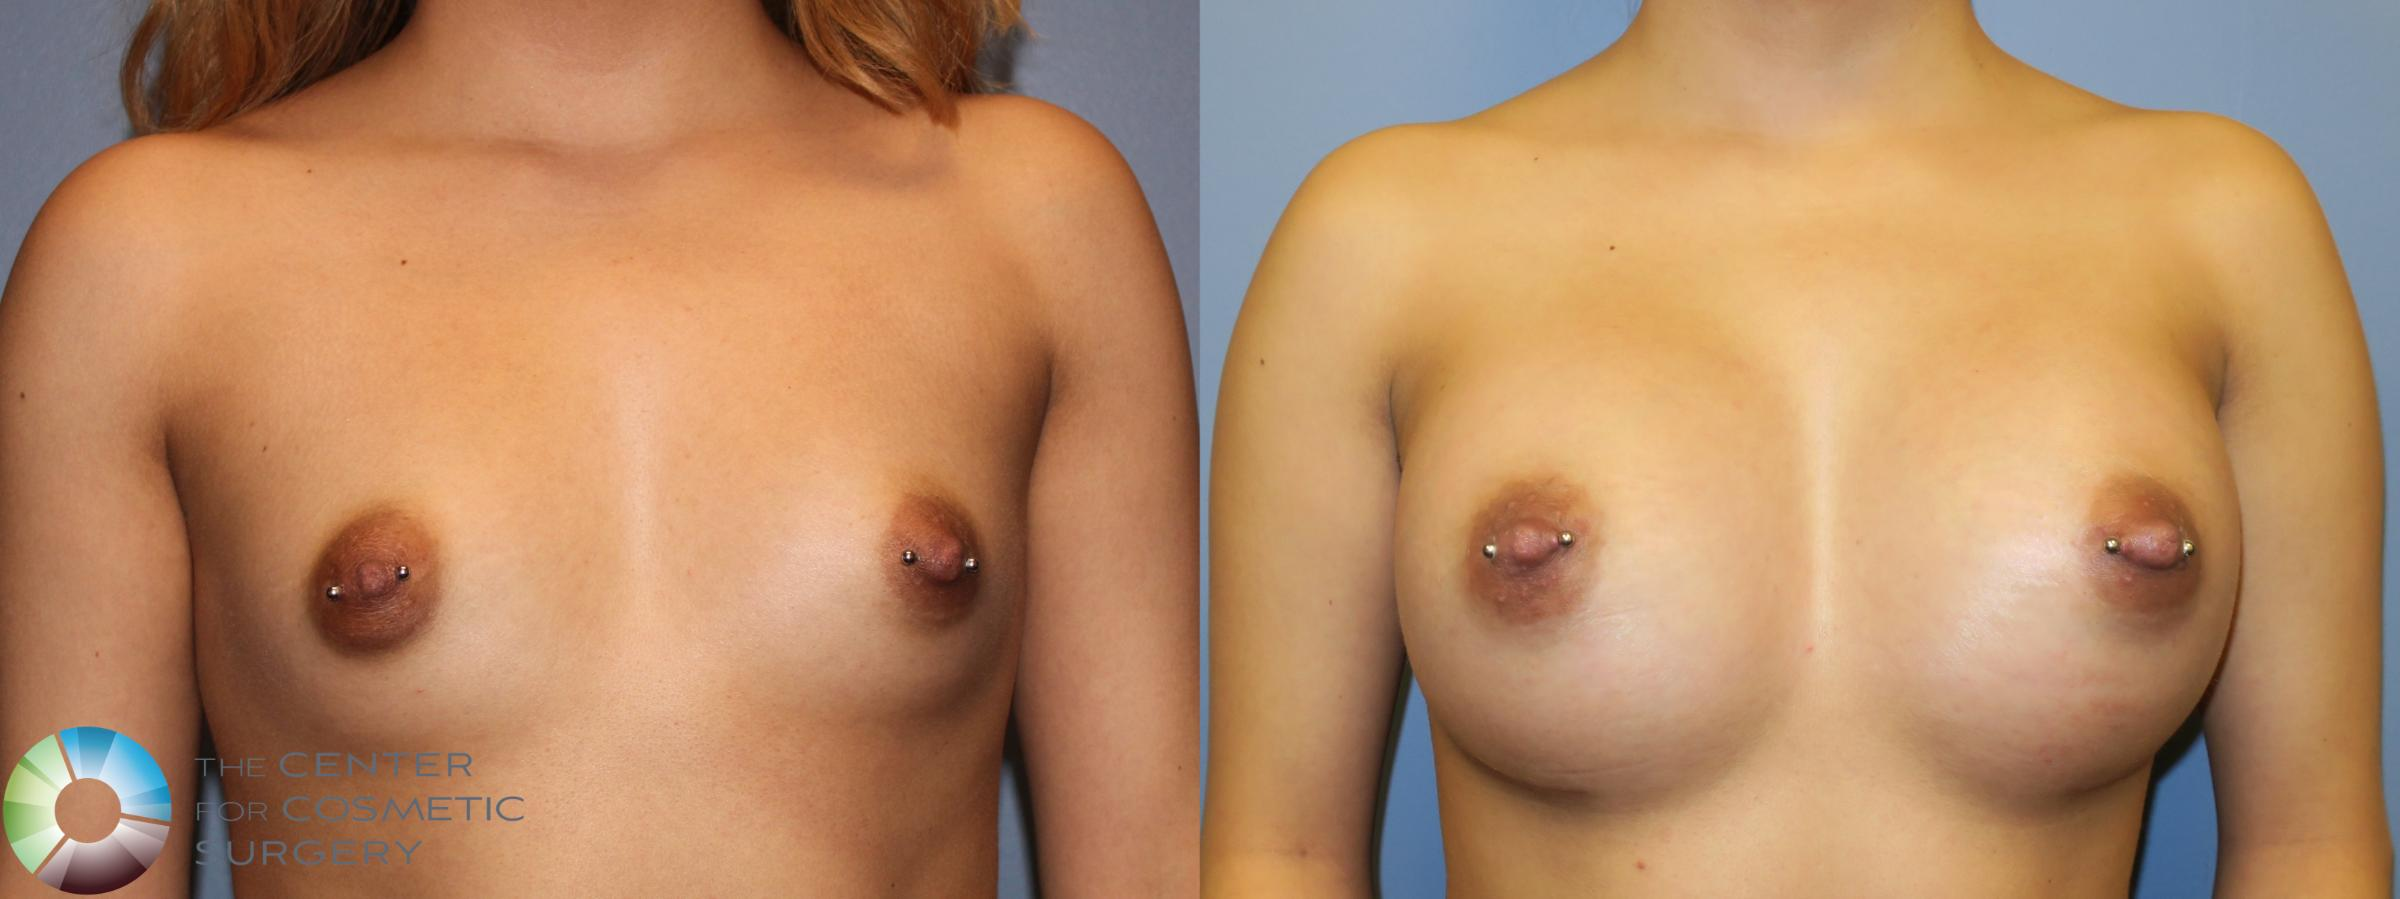 Breast Augmentation Case 965 Before & After View #1 | Golden, CO | The Center for Cosmetic Surgery